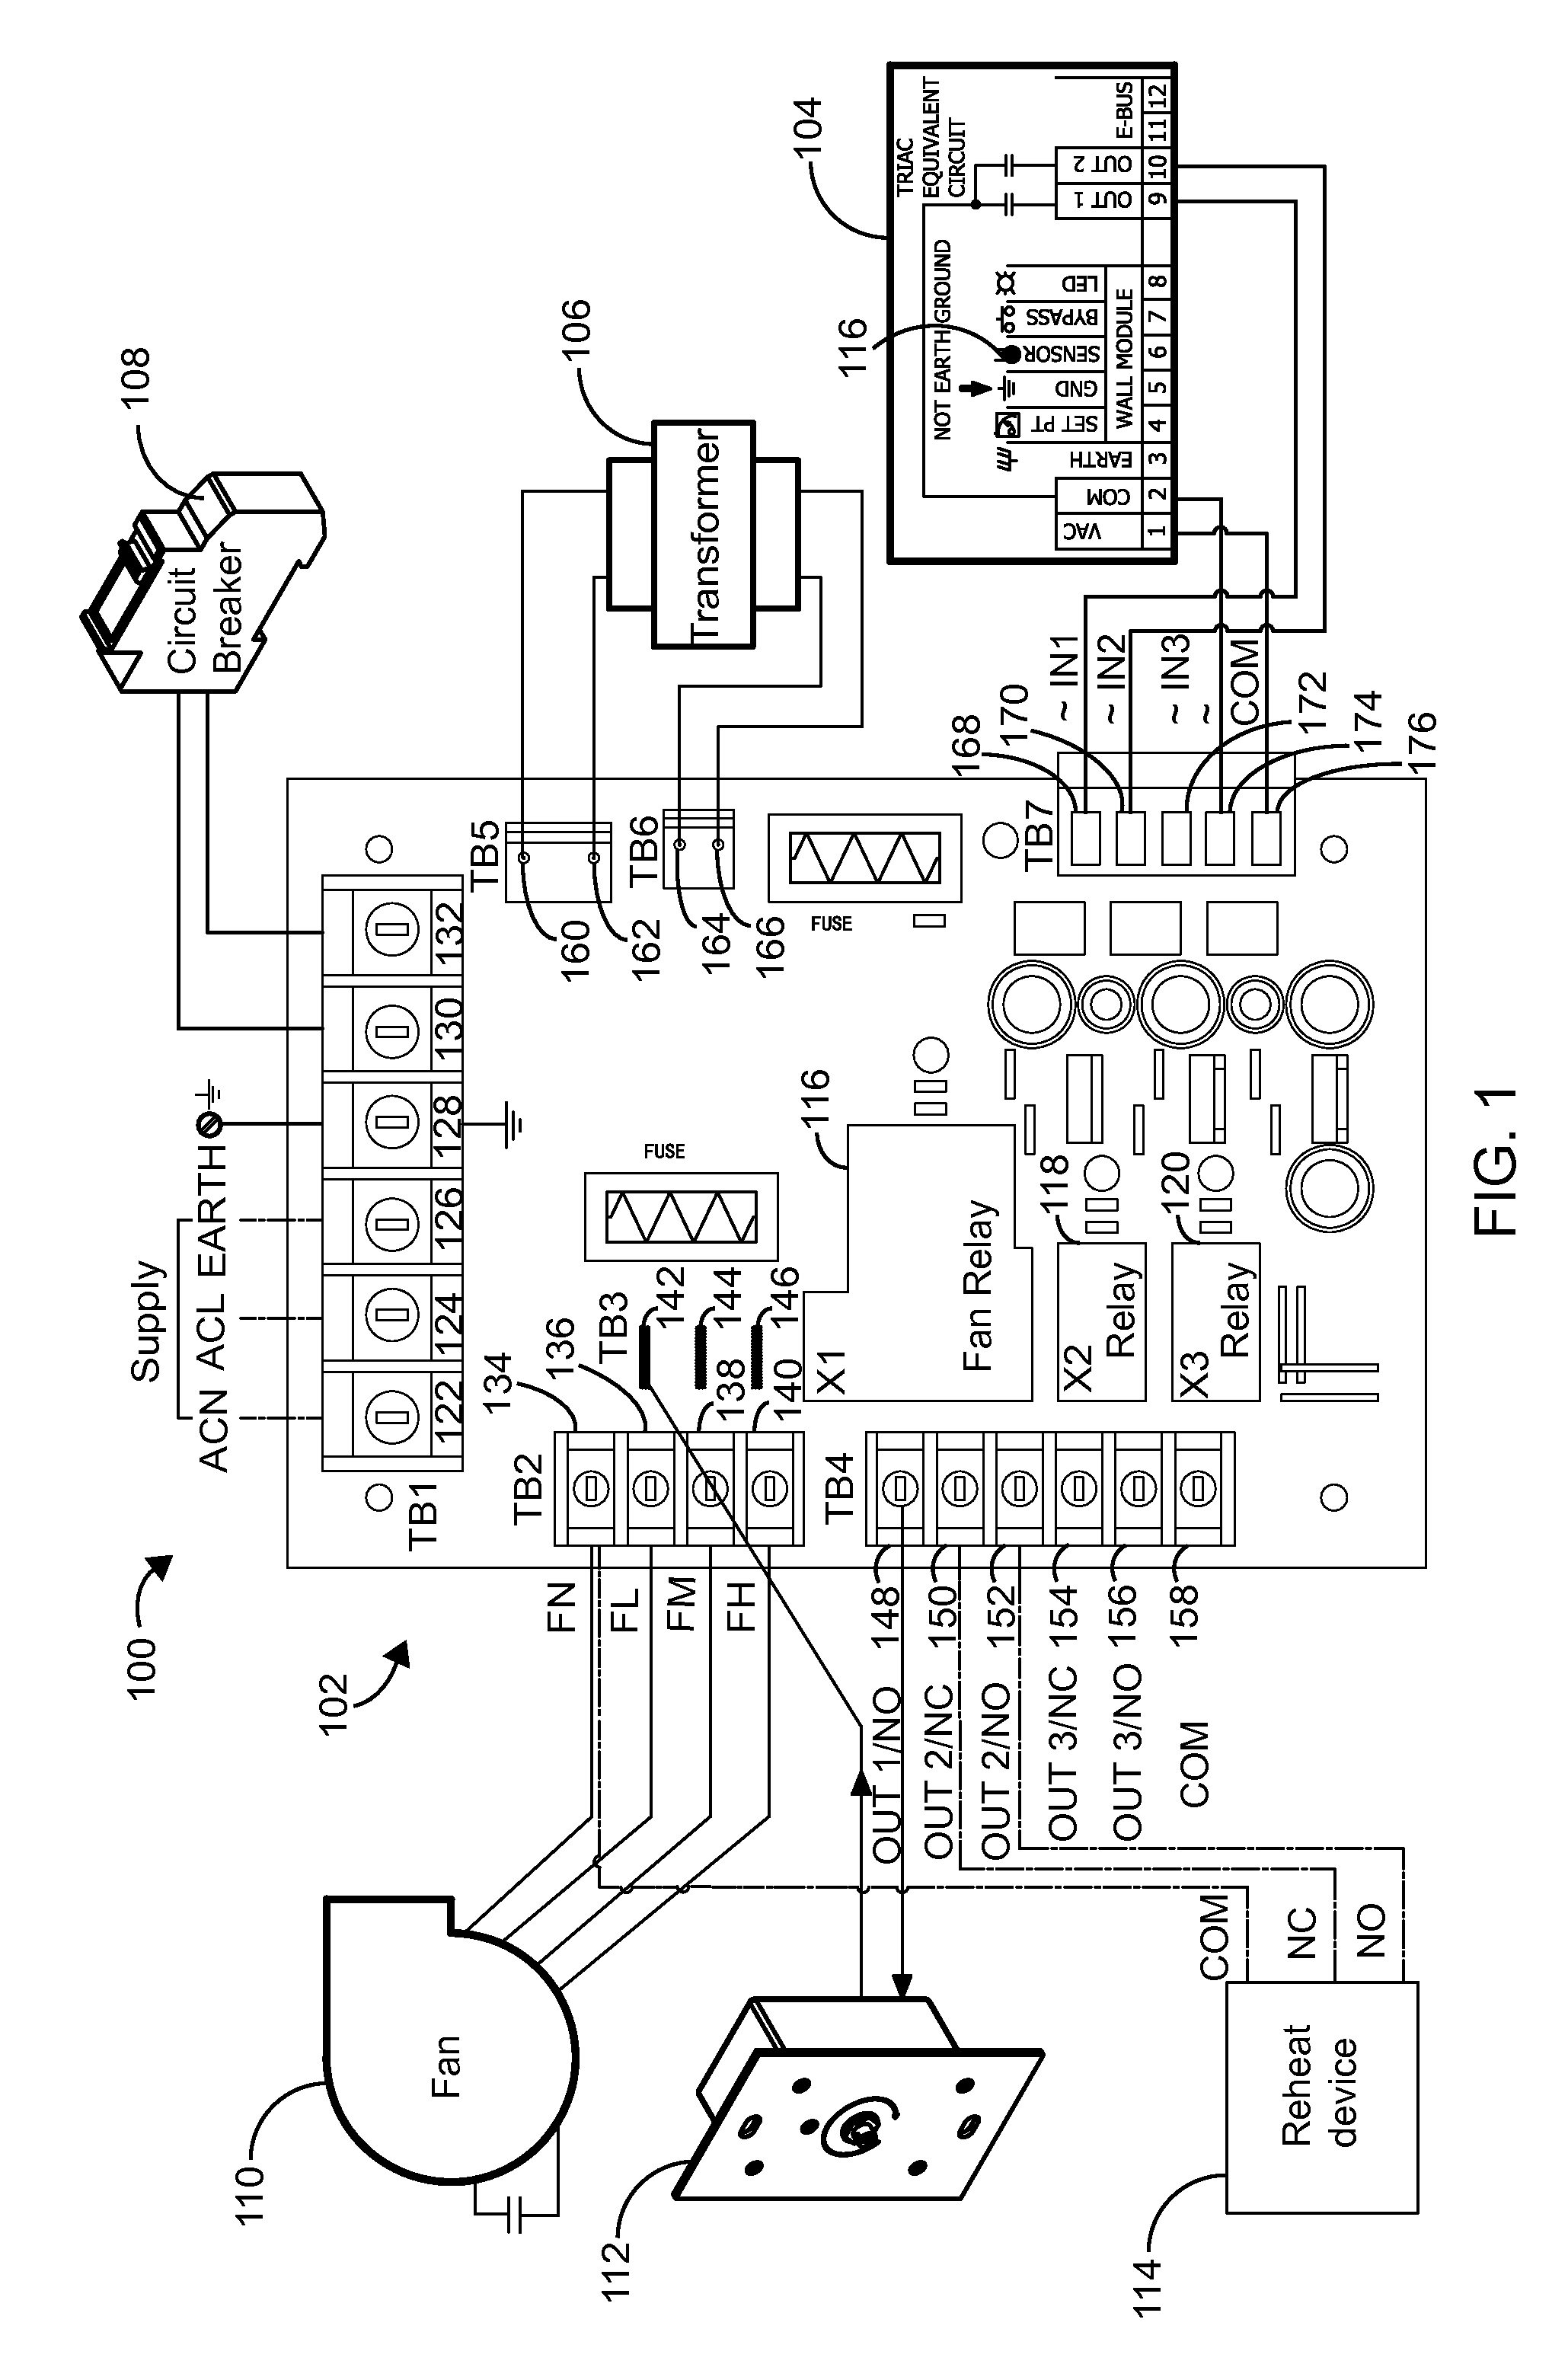 Vav Control Wiring Diagram 2000 International 4700 Wiring